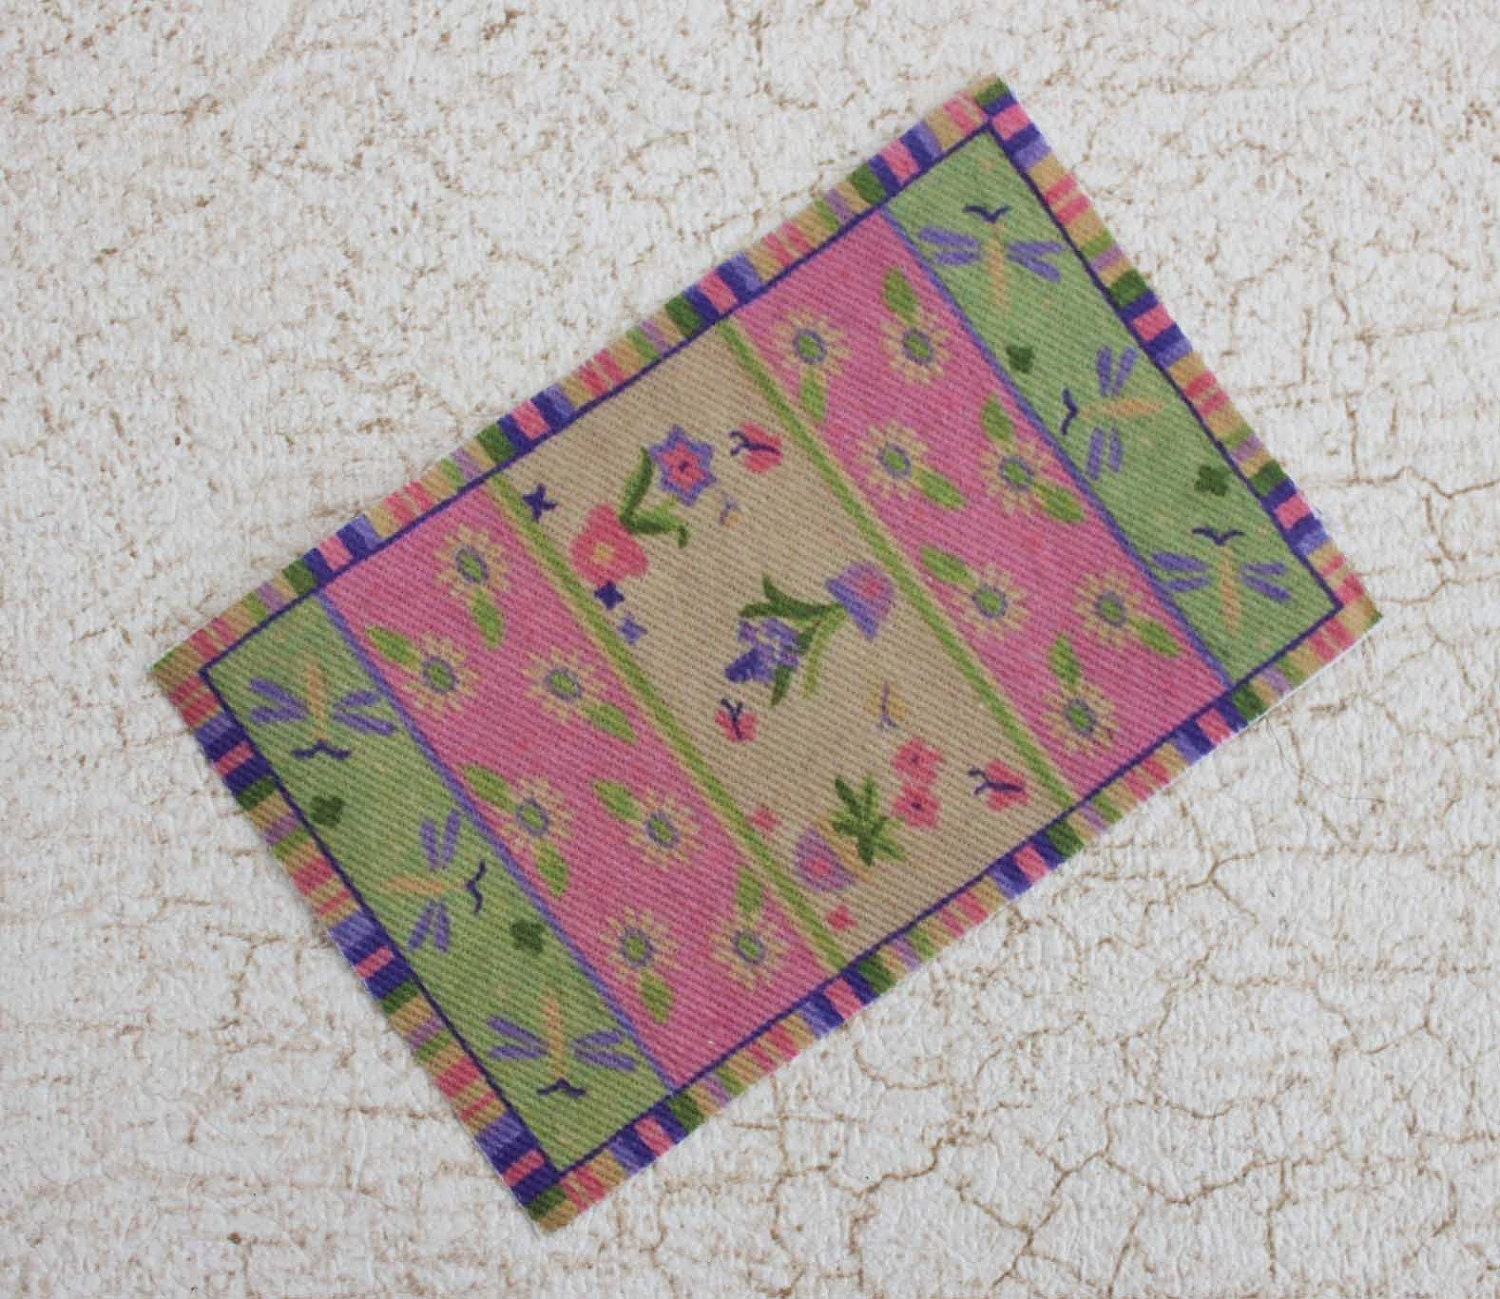 Miniature Dollhouse Rug In Pink And Green Floral Cottage Style